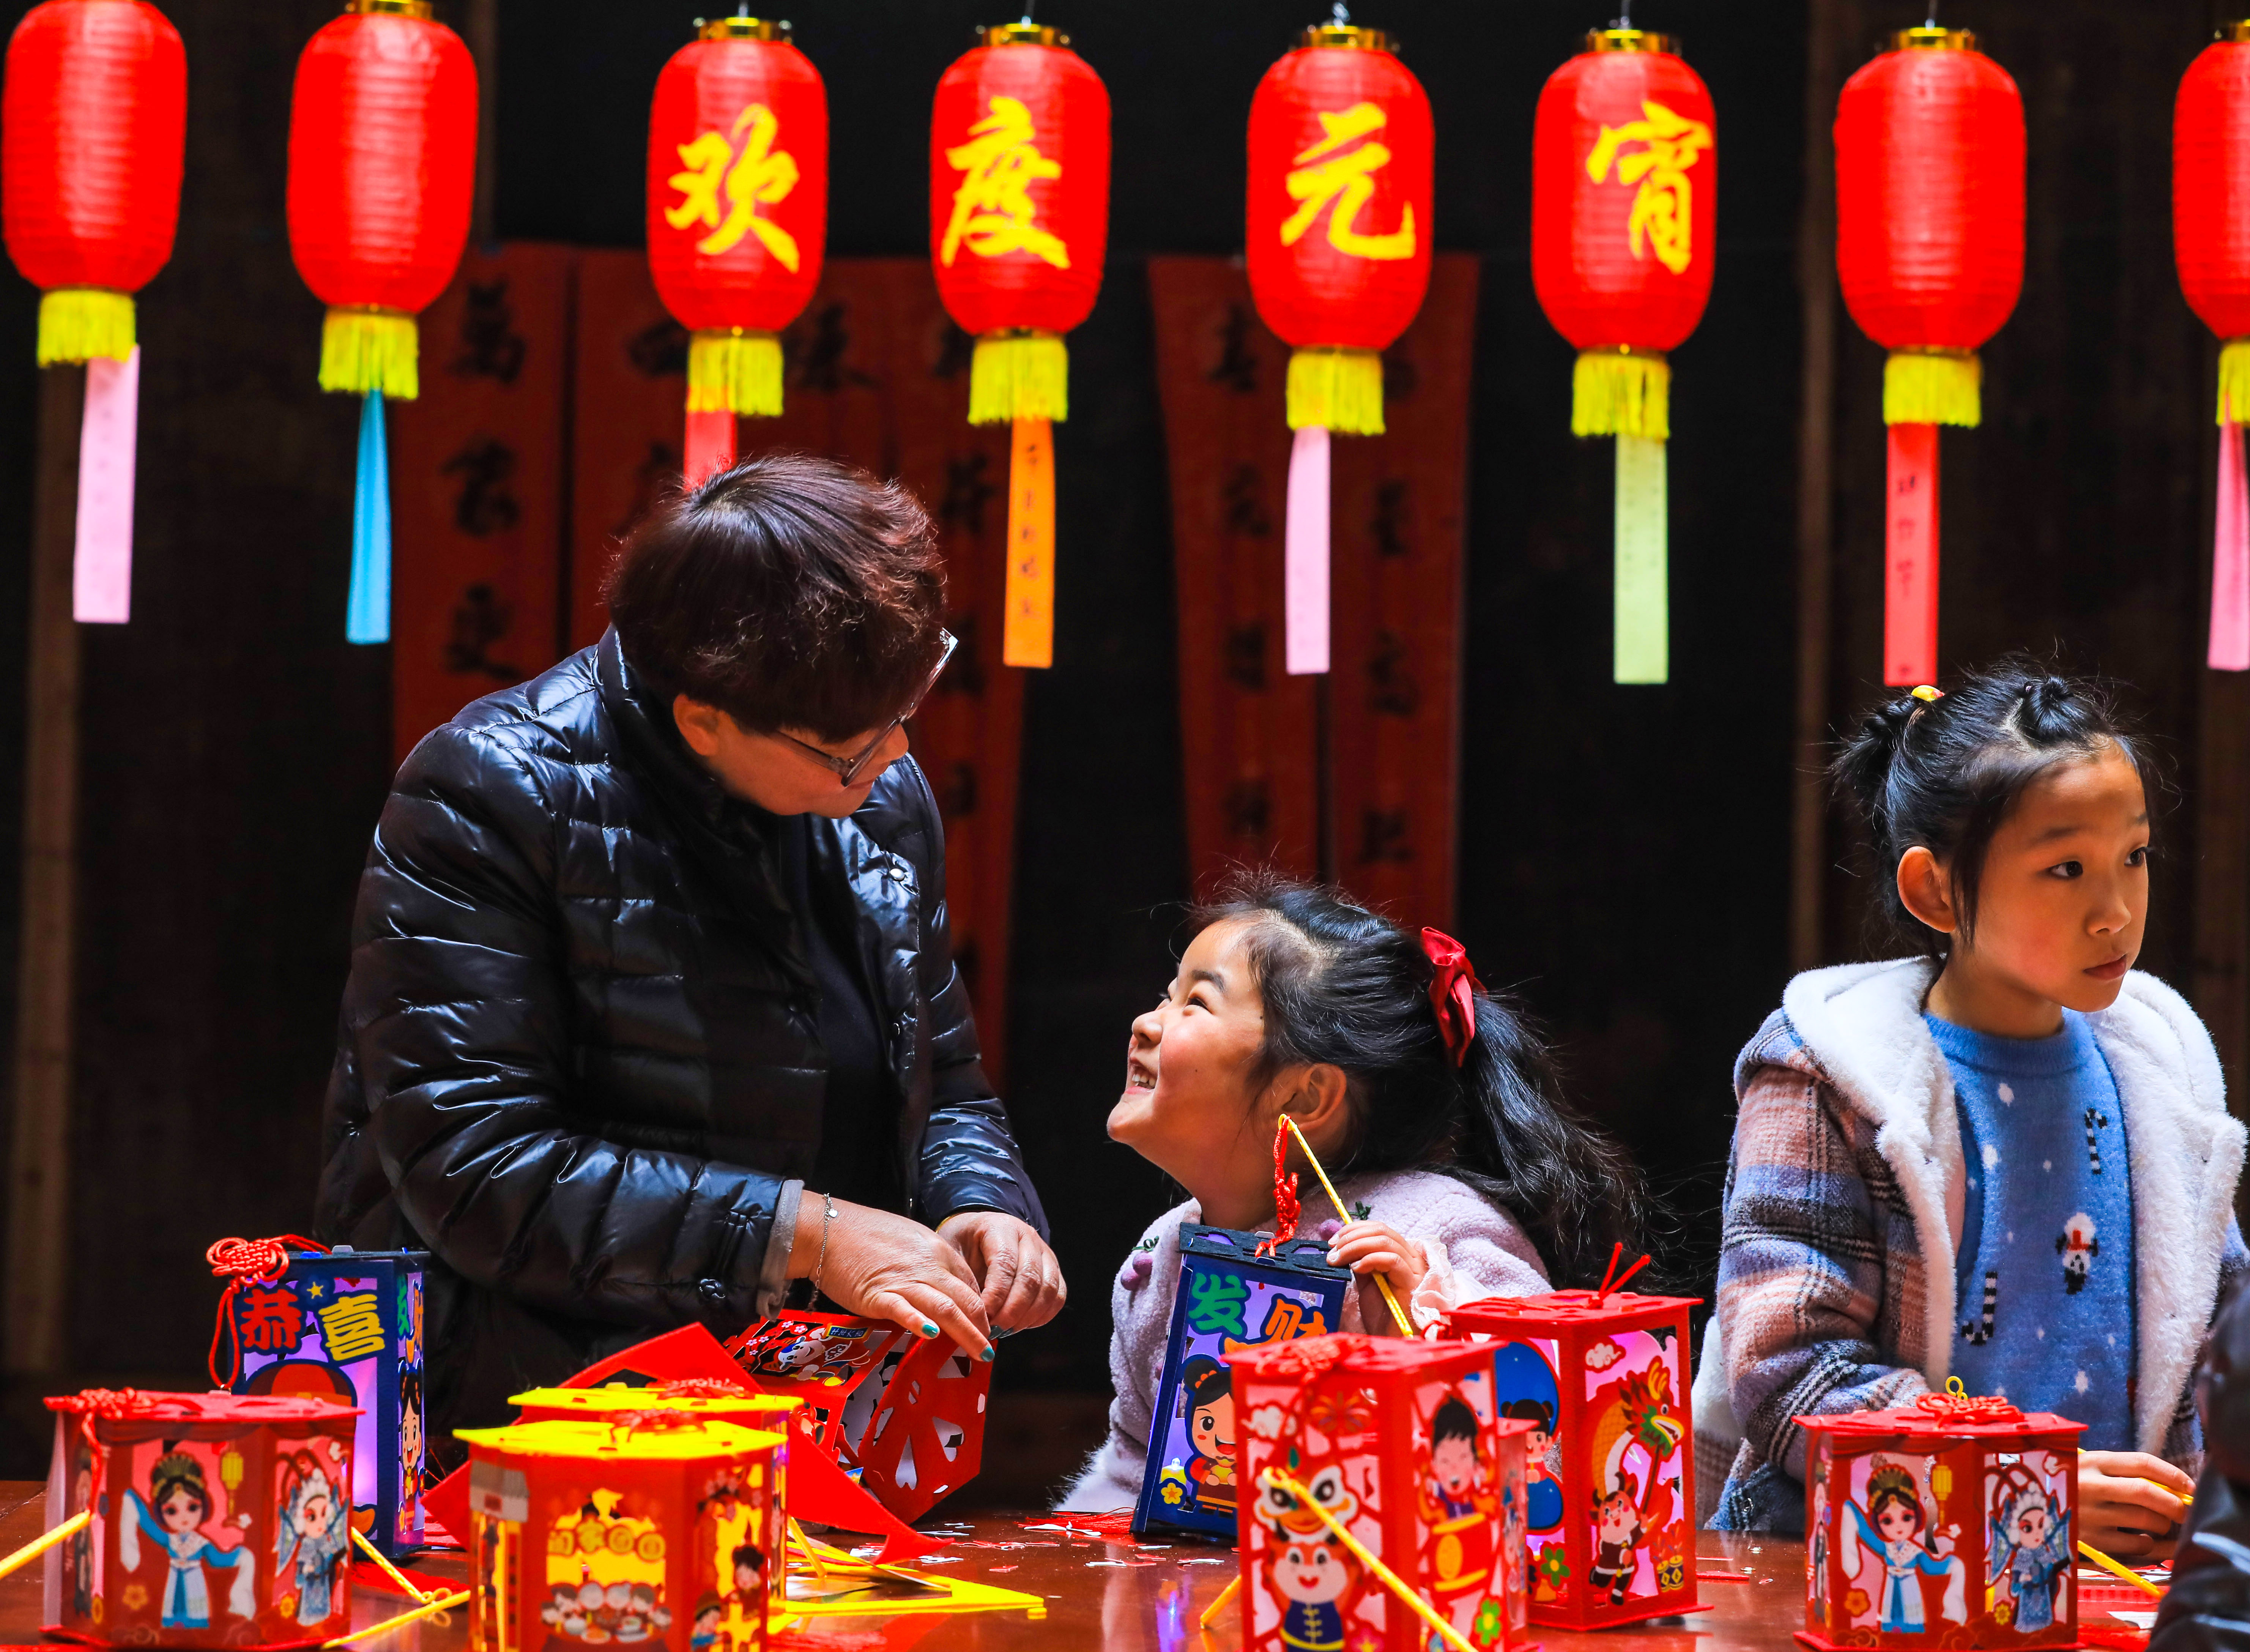 Lantern Festival traditions celebrated all across China